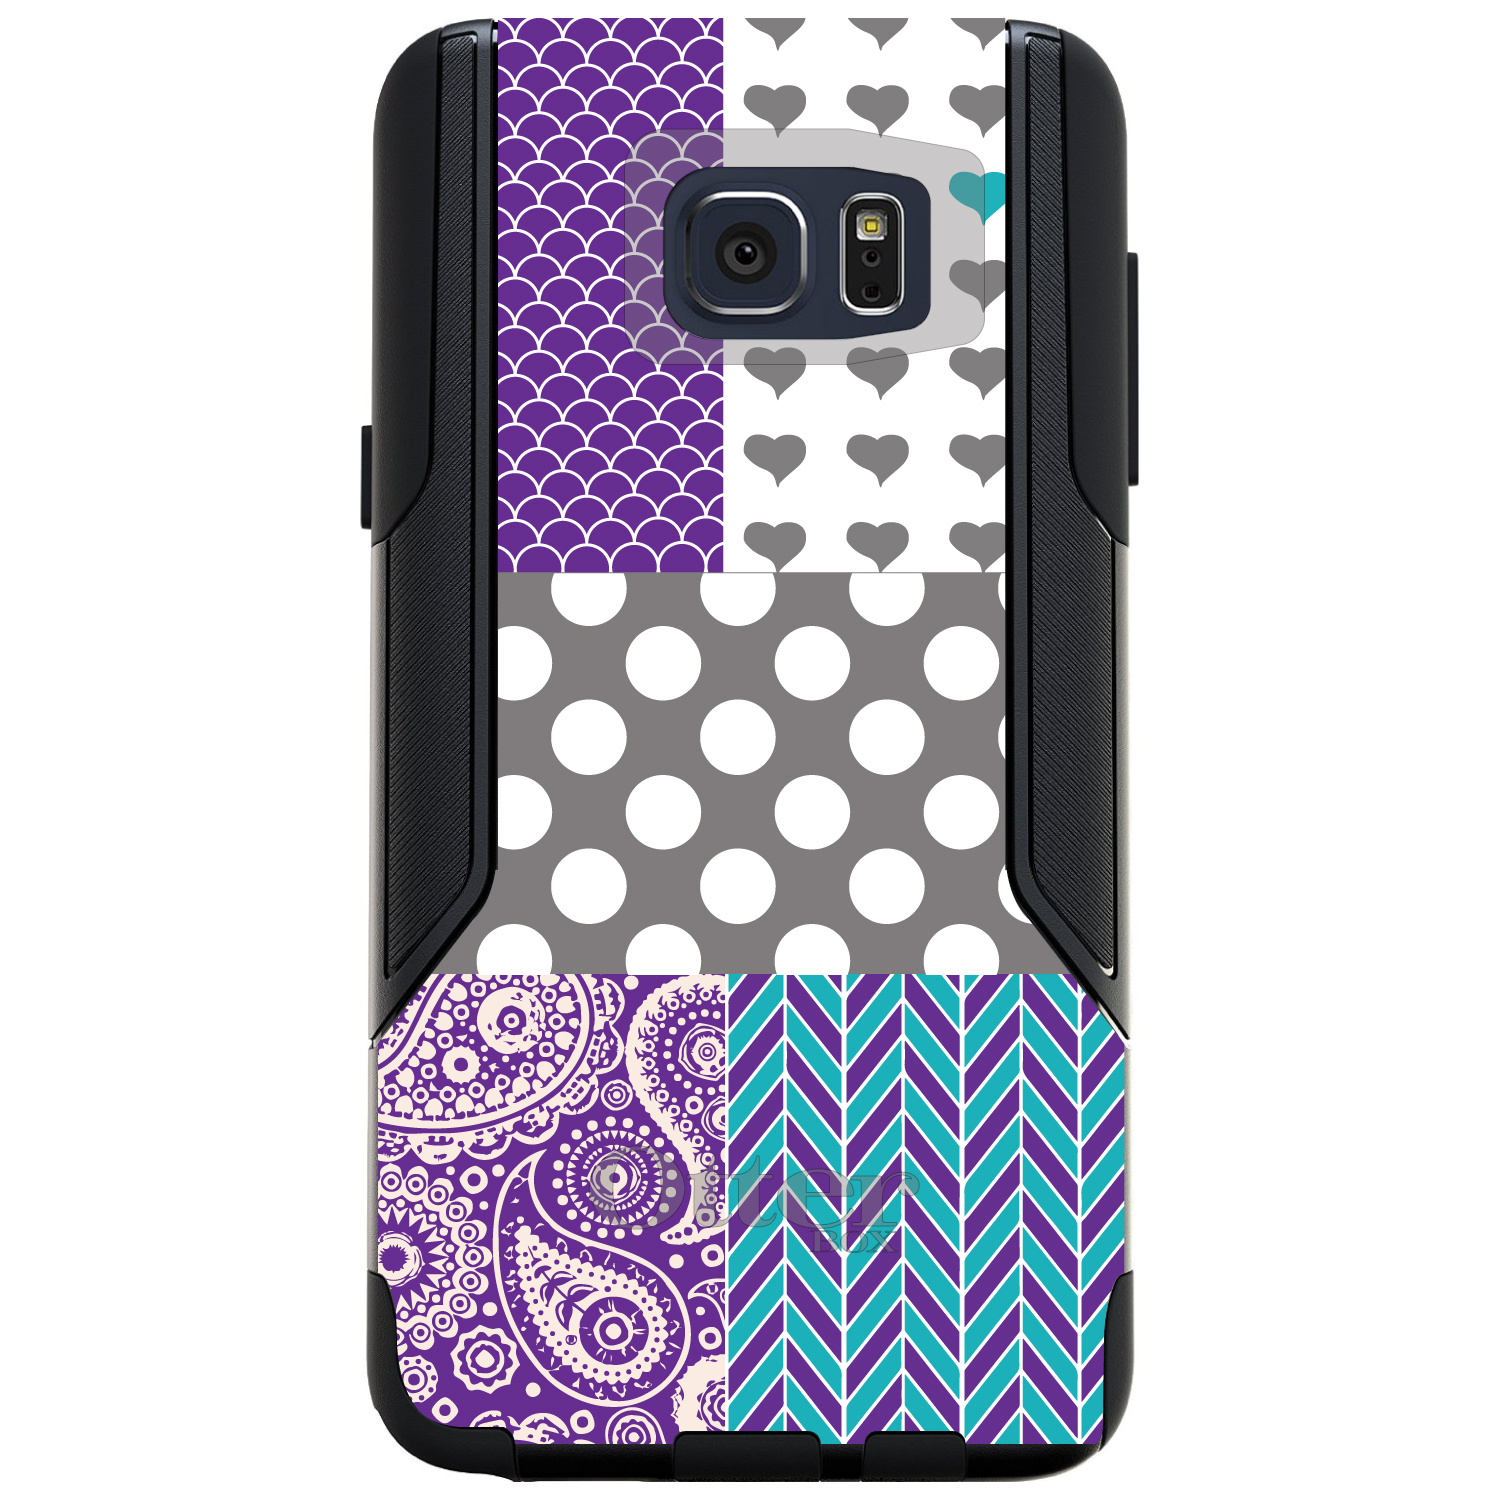 DistinctInk™ Custom Black OtterBox Commuter Series Case for Samsung Galaxy Note 5 - Purple Teal Grey Patterns